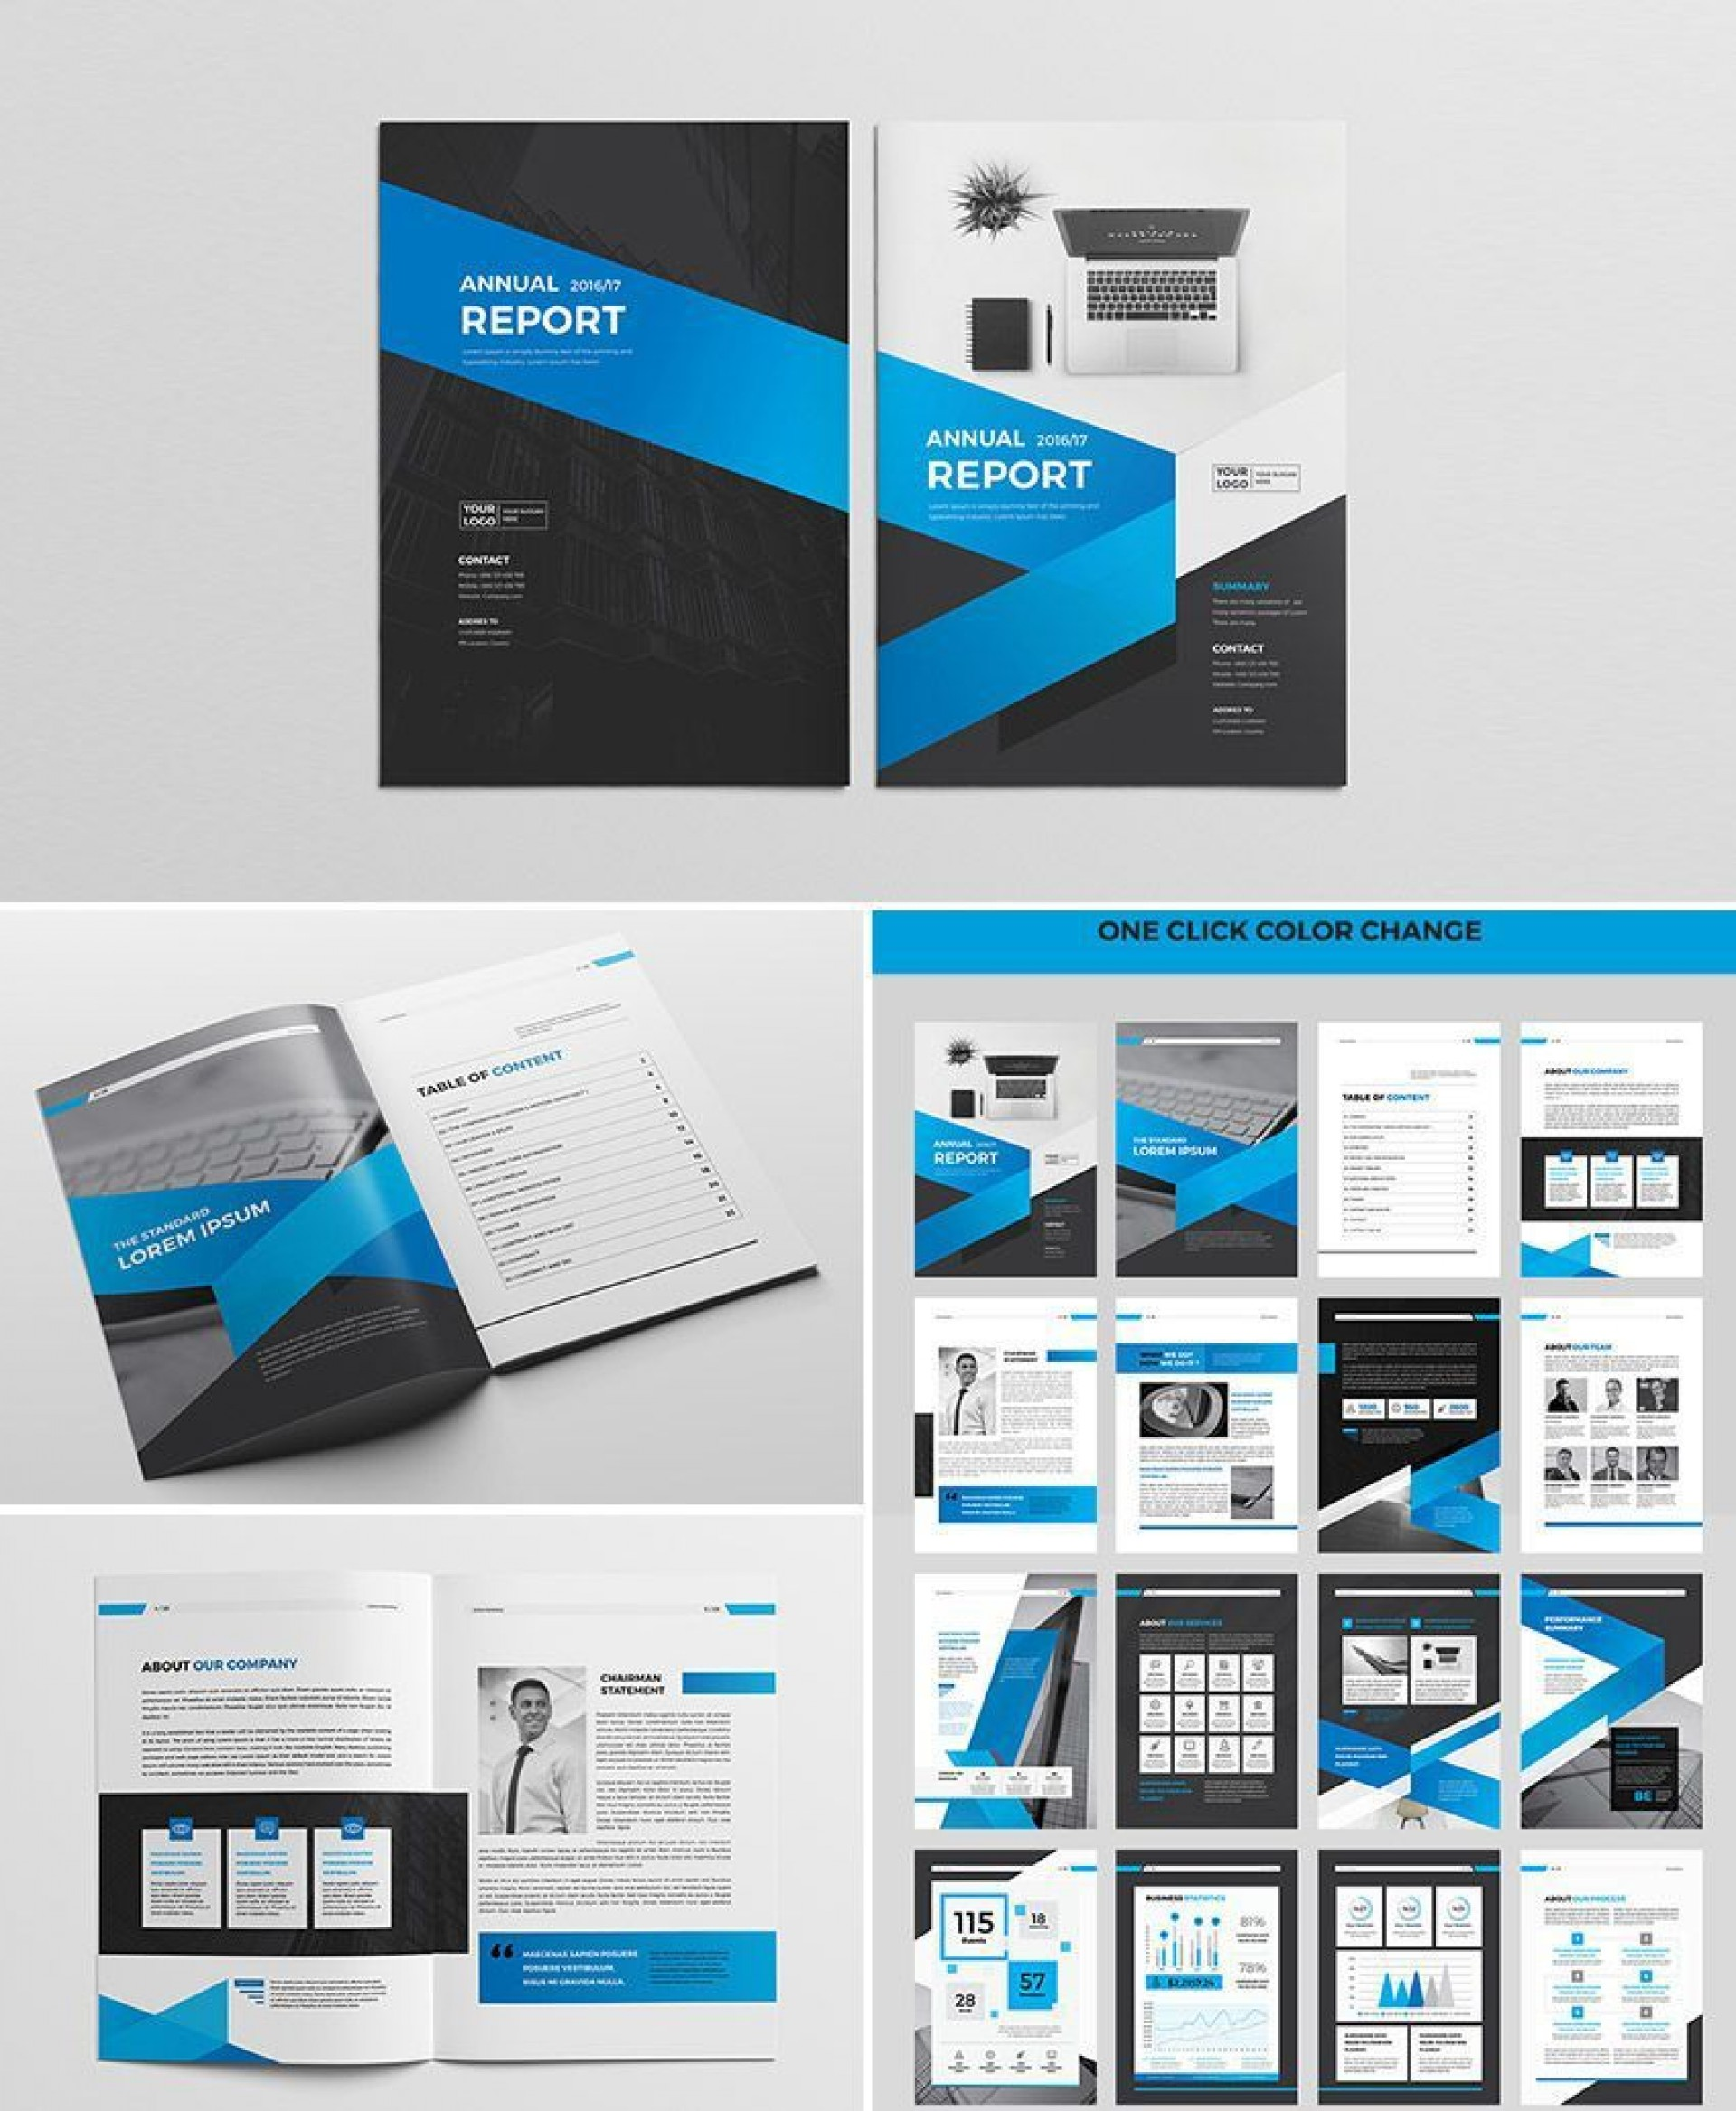 003 Incredible Free Indesign Annual Report Template Download Inspiration 1920